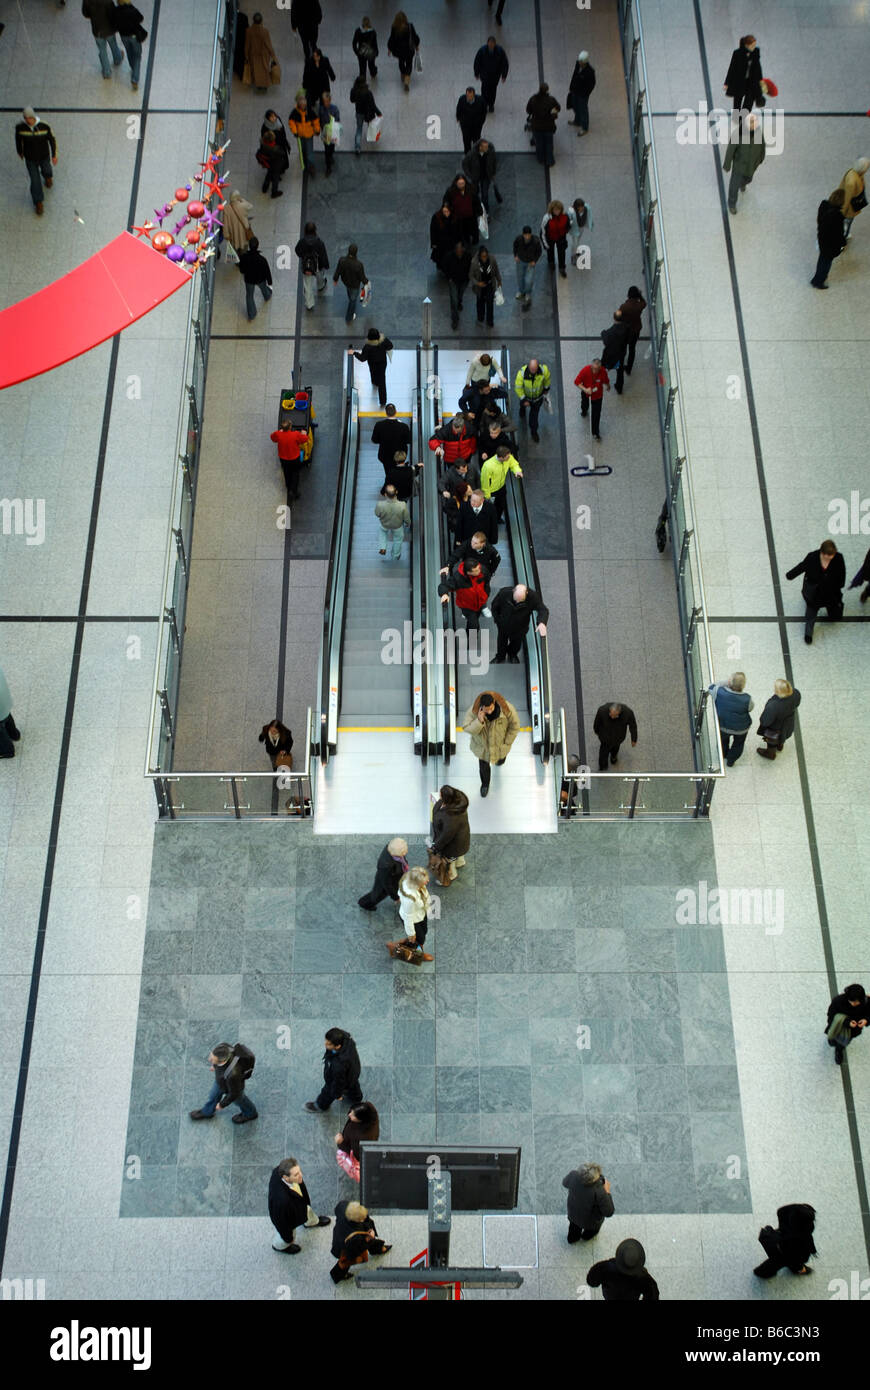 Shoppers in Manchester Arndale - Stock Image